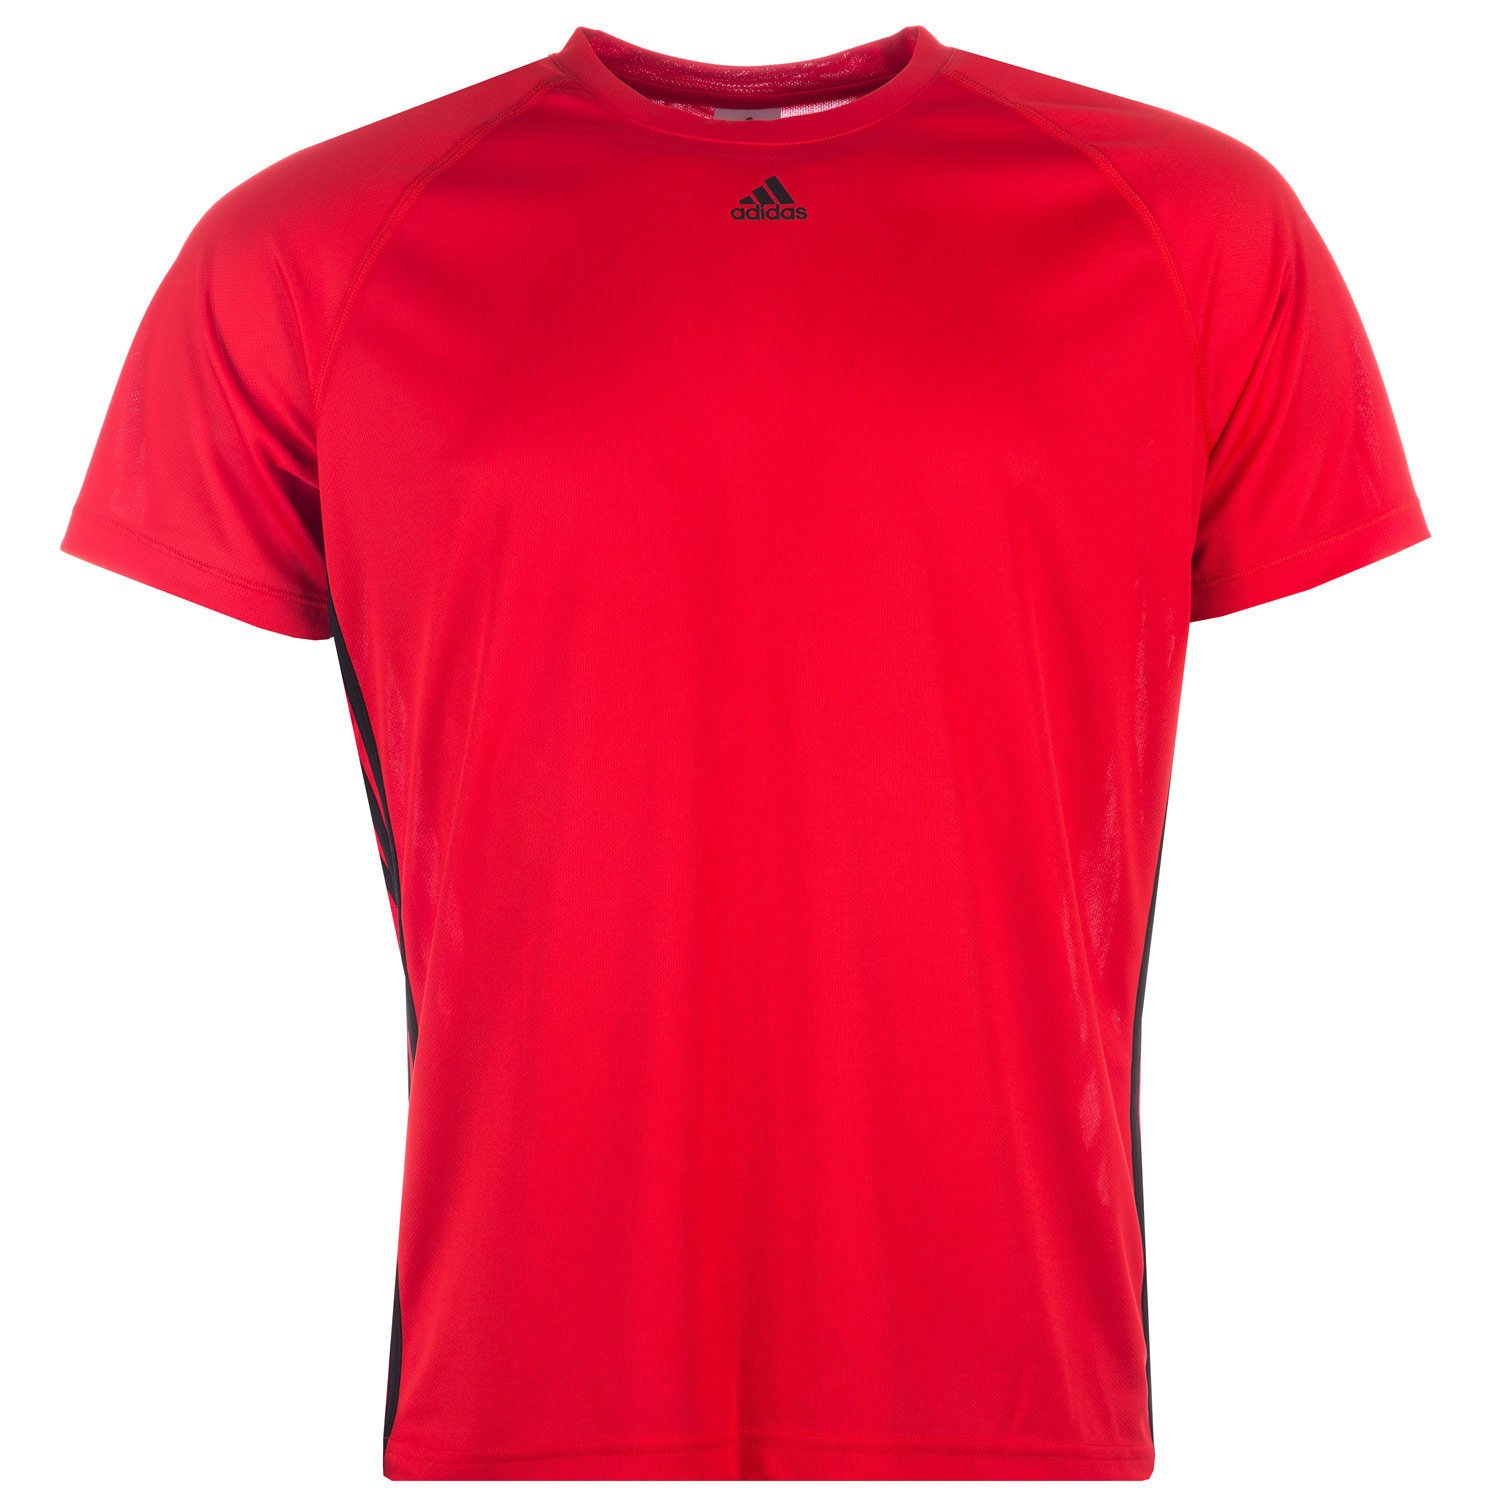 Adidas T-Shirt Clima Bande de Base 3 XS Rouge Noir  Amazon.fr  Sports et  Loisirs d0a59114b2b0